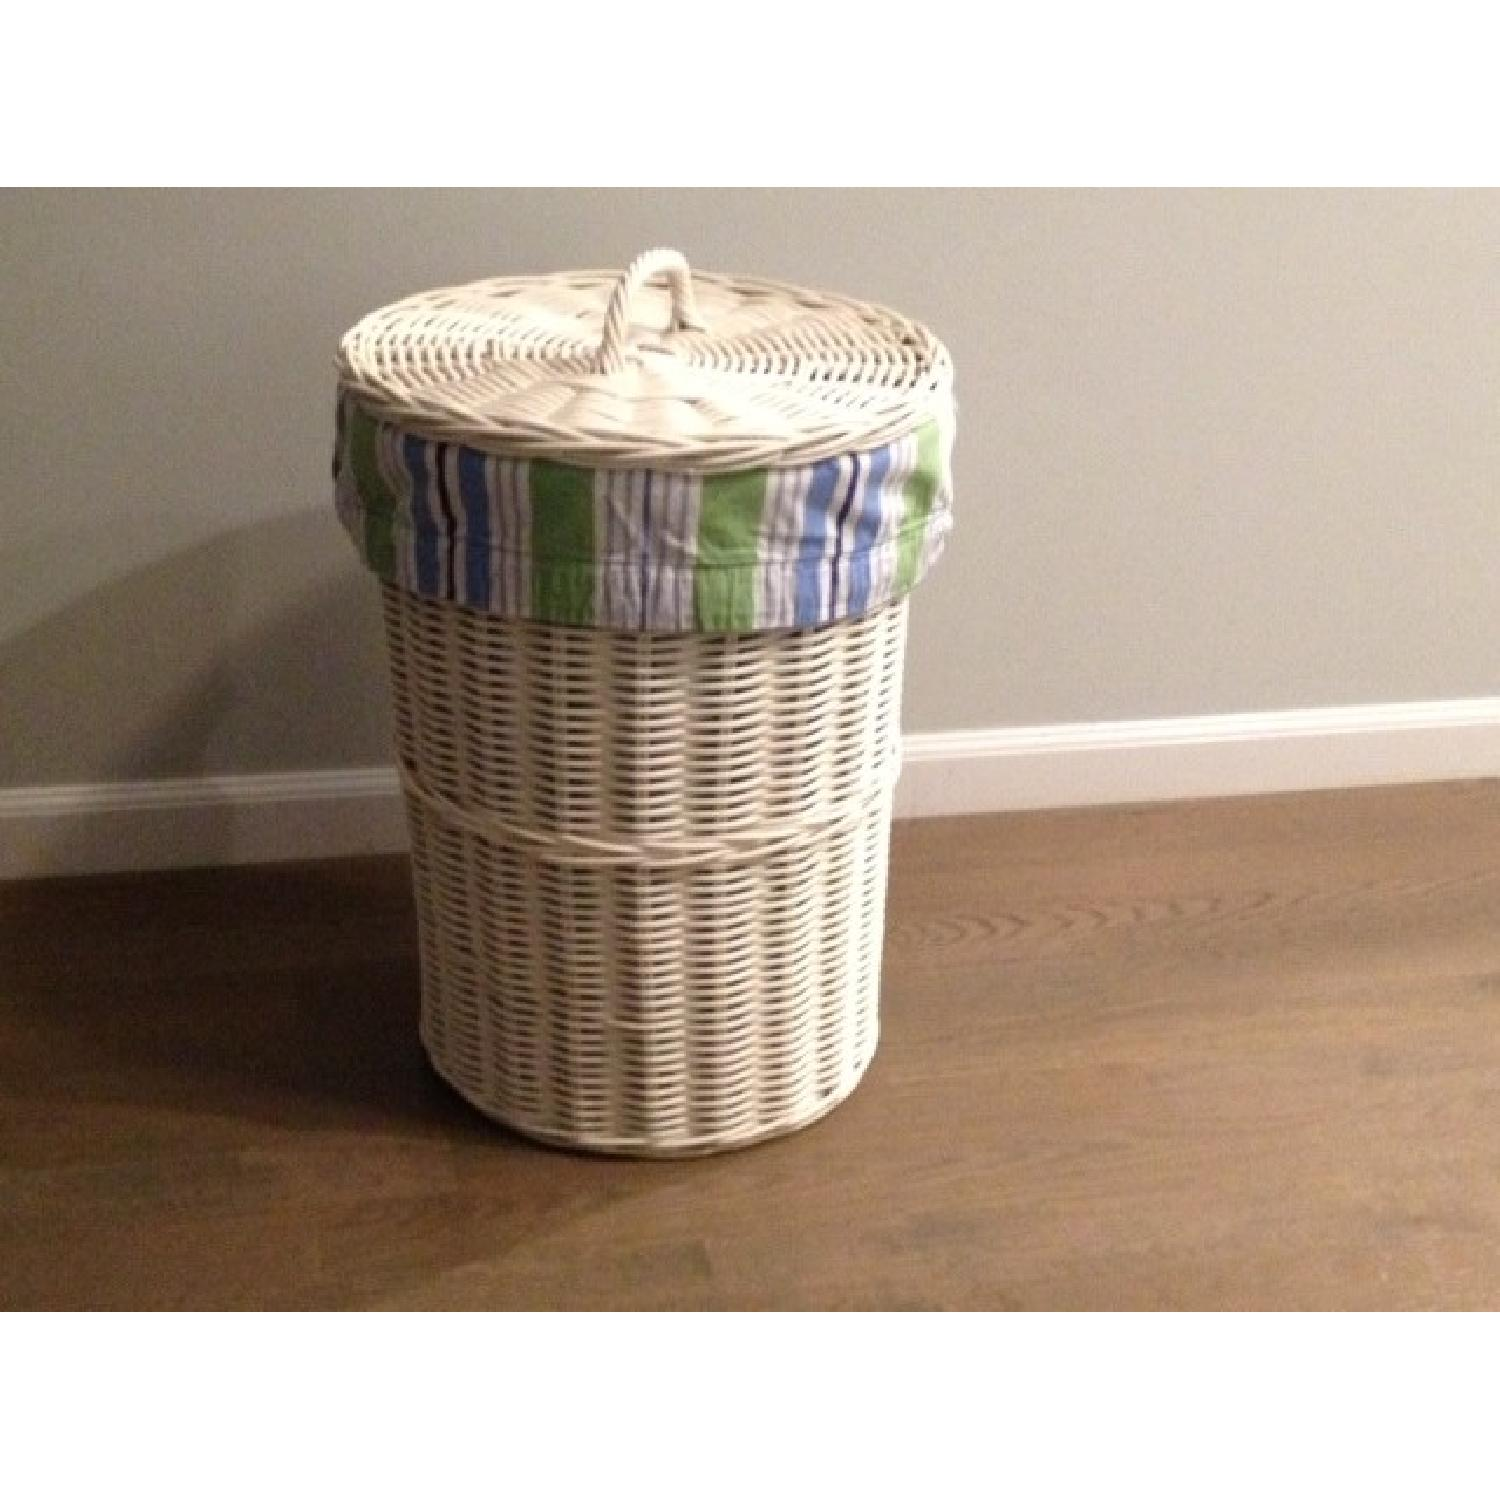 Pottery Barn Sabrina Hamper with Inserts - image-1